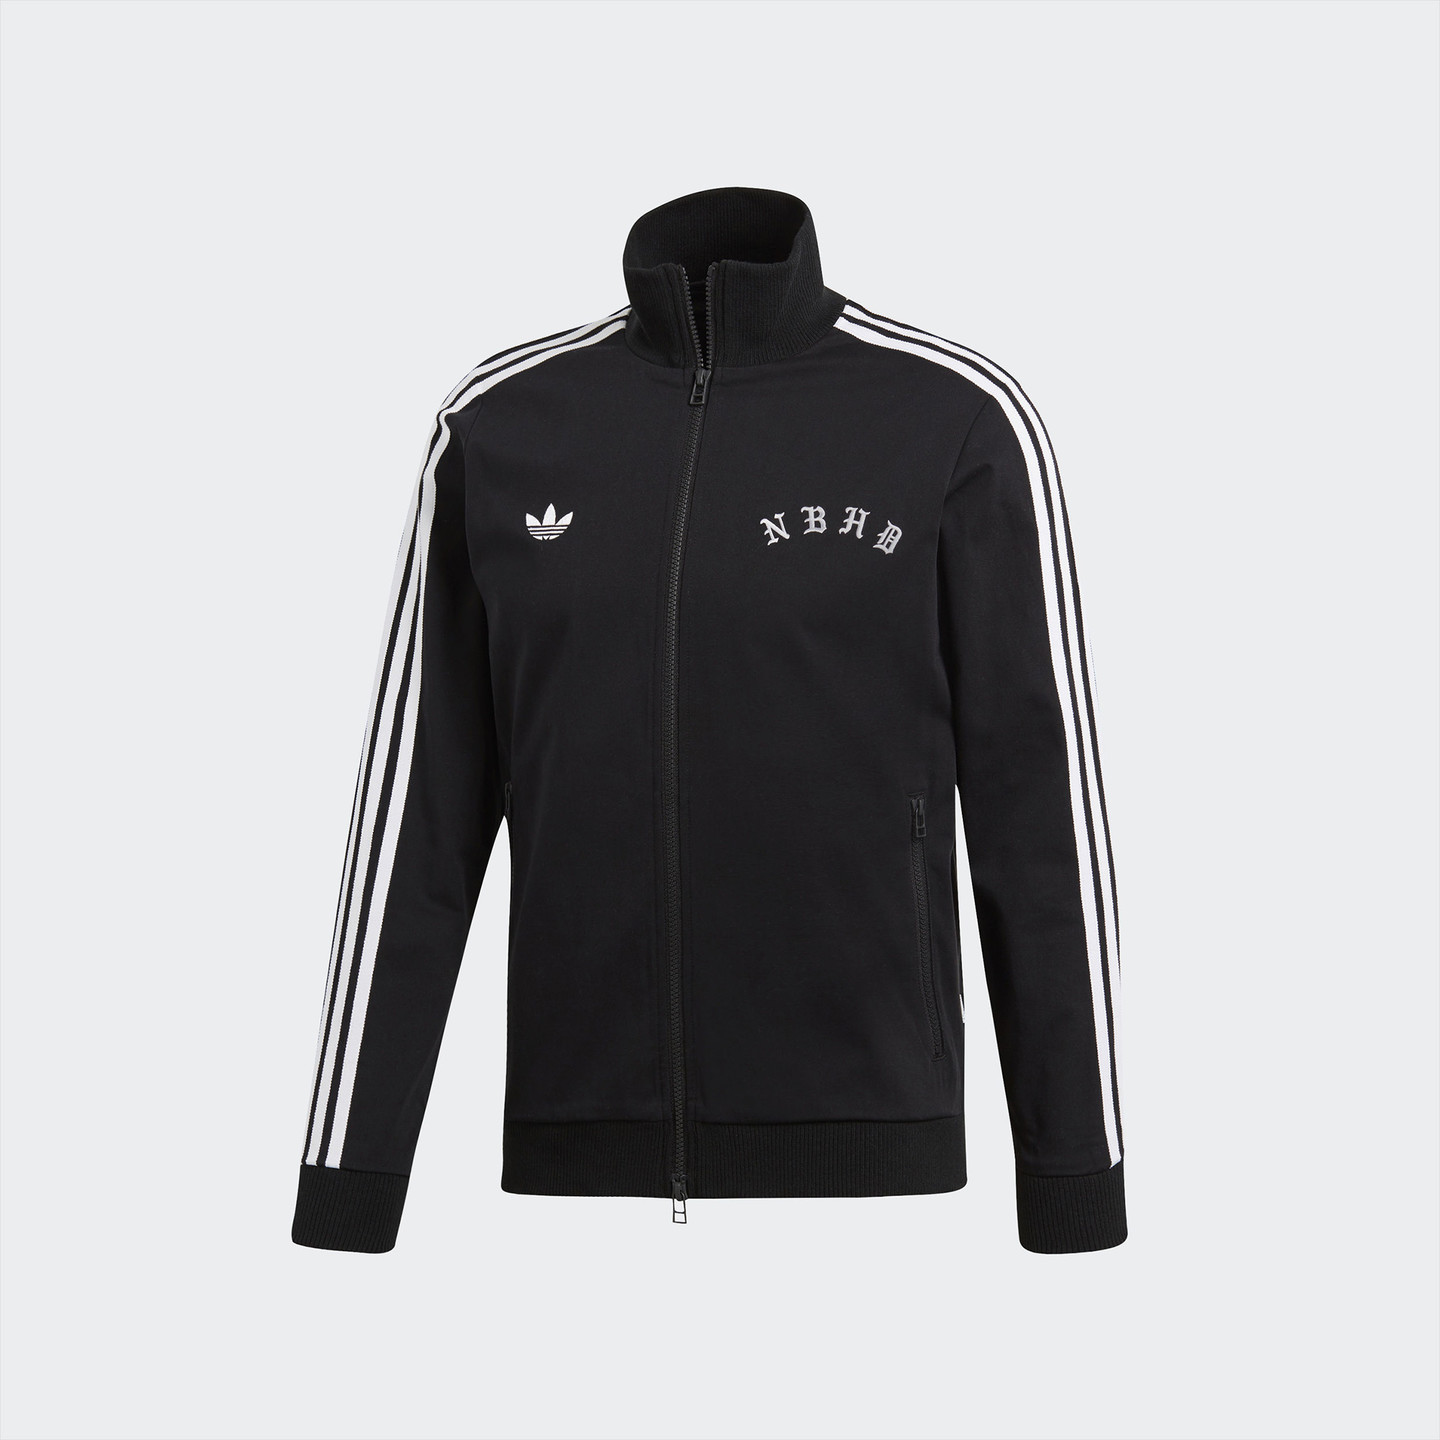 Adidas Neighborhood Track Jacket Black / White / Red DH2043